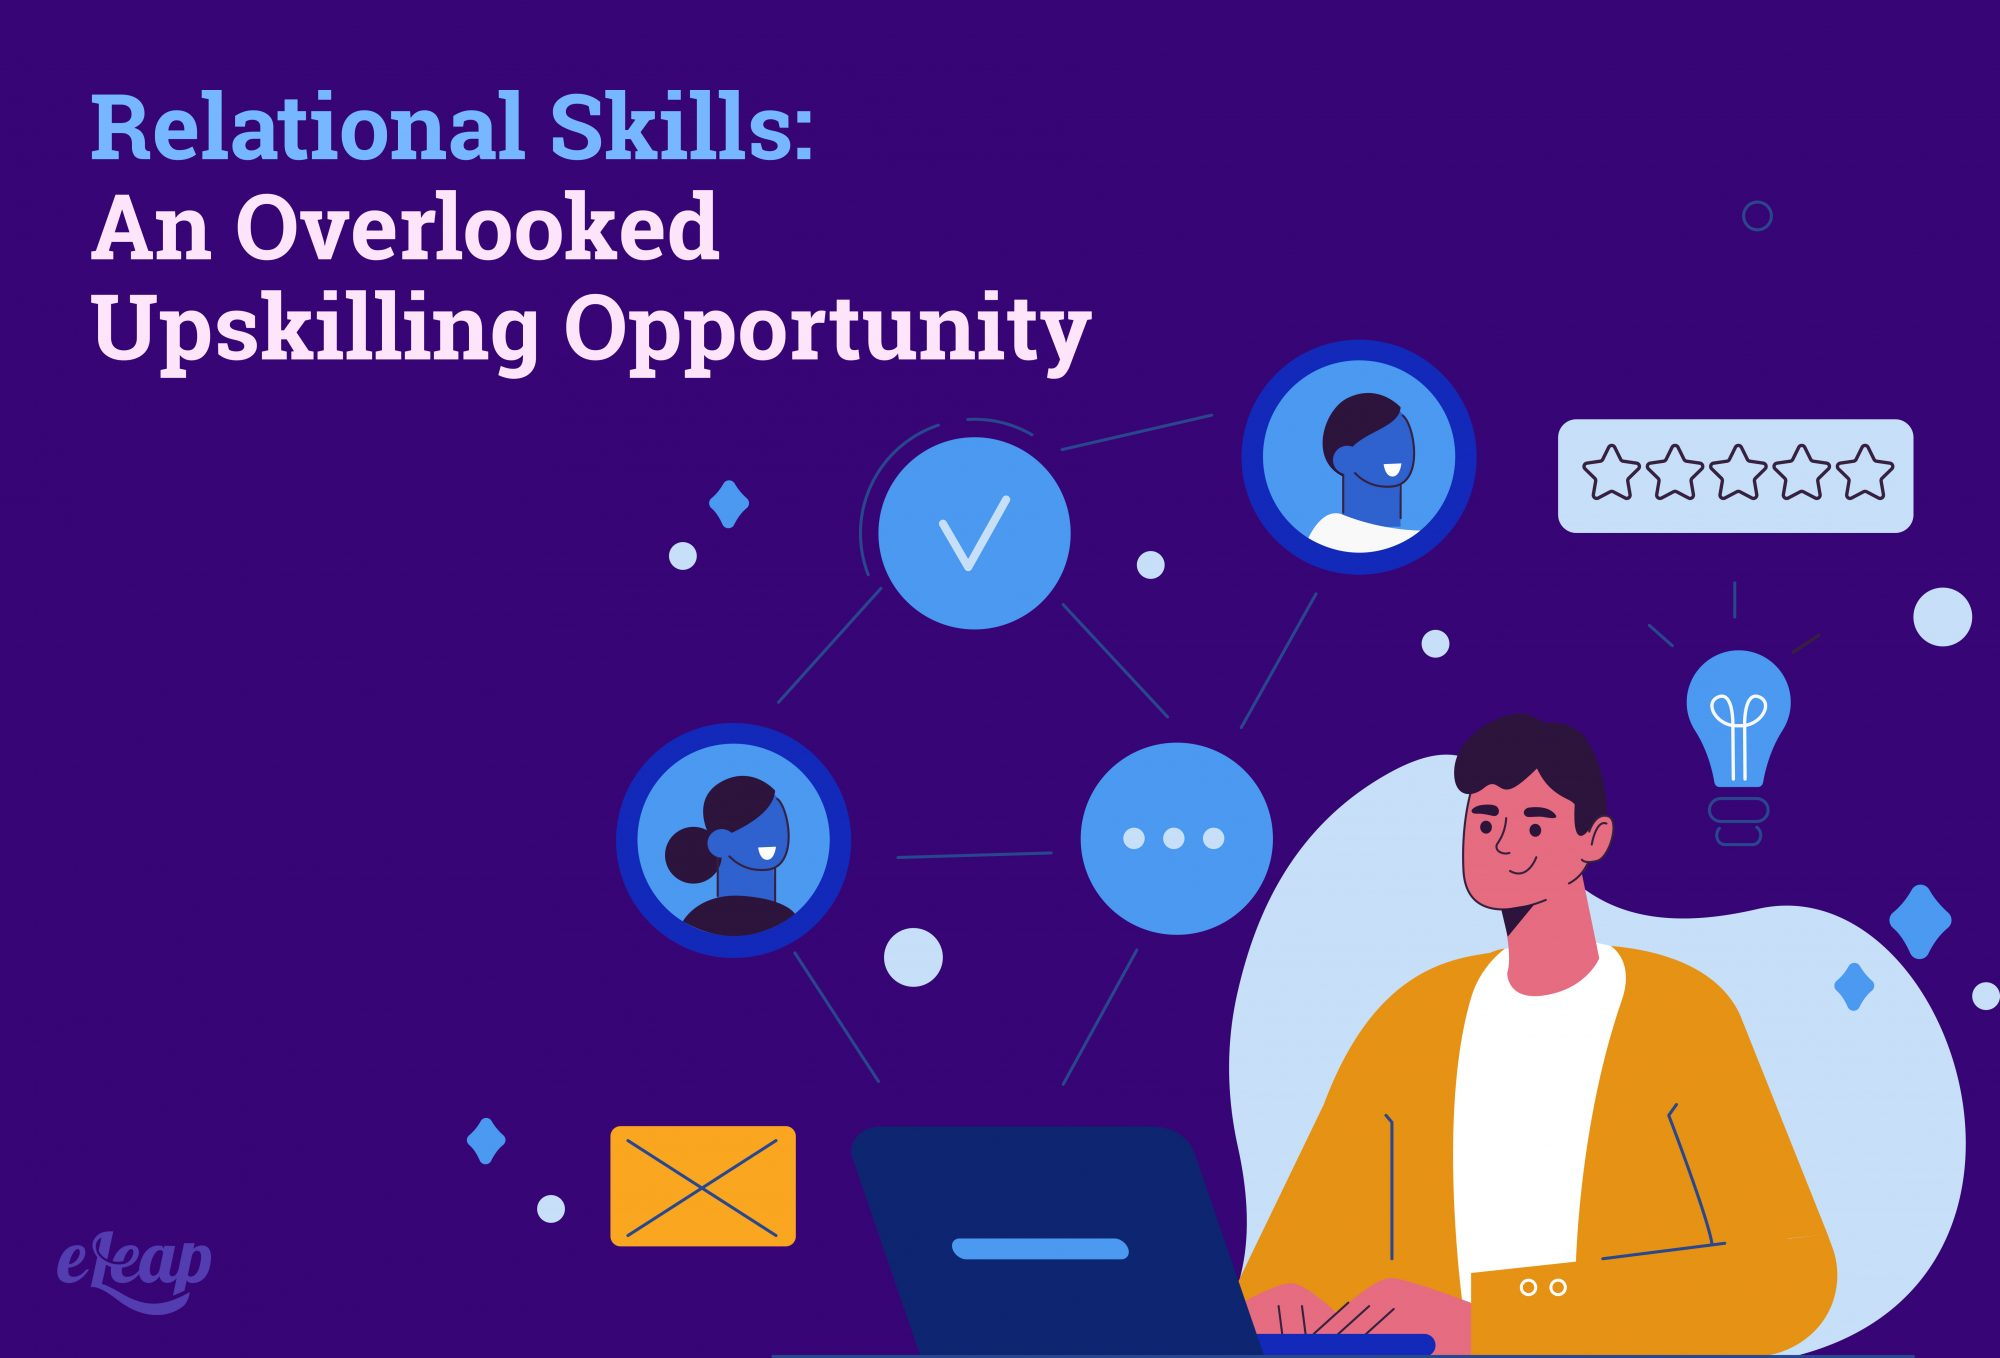 Relational Skills: An Overlooked Upskilling Opportunity